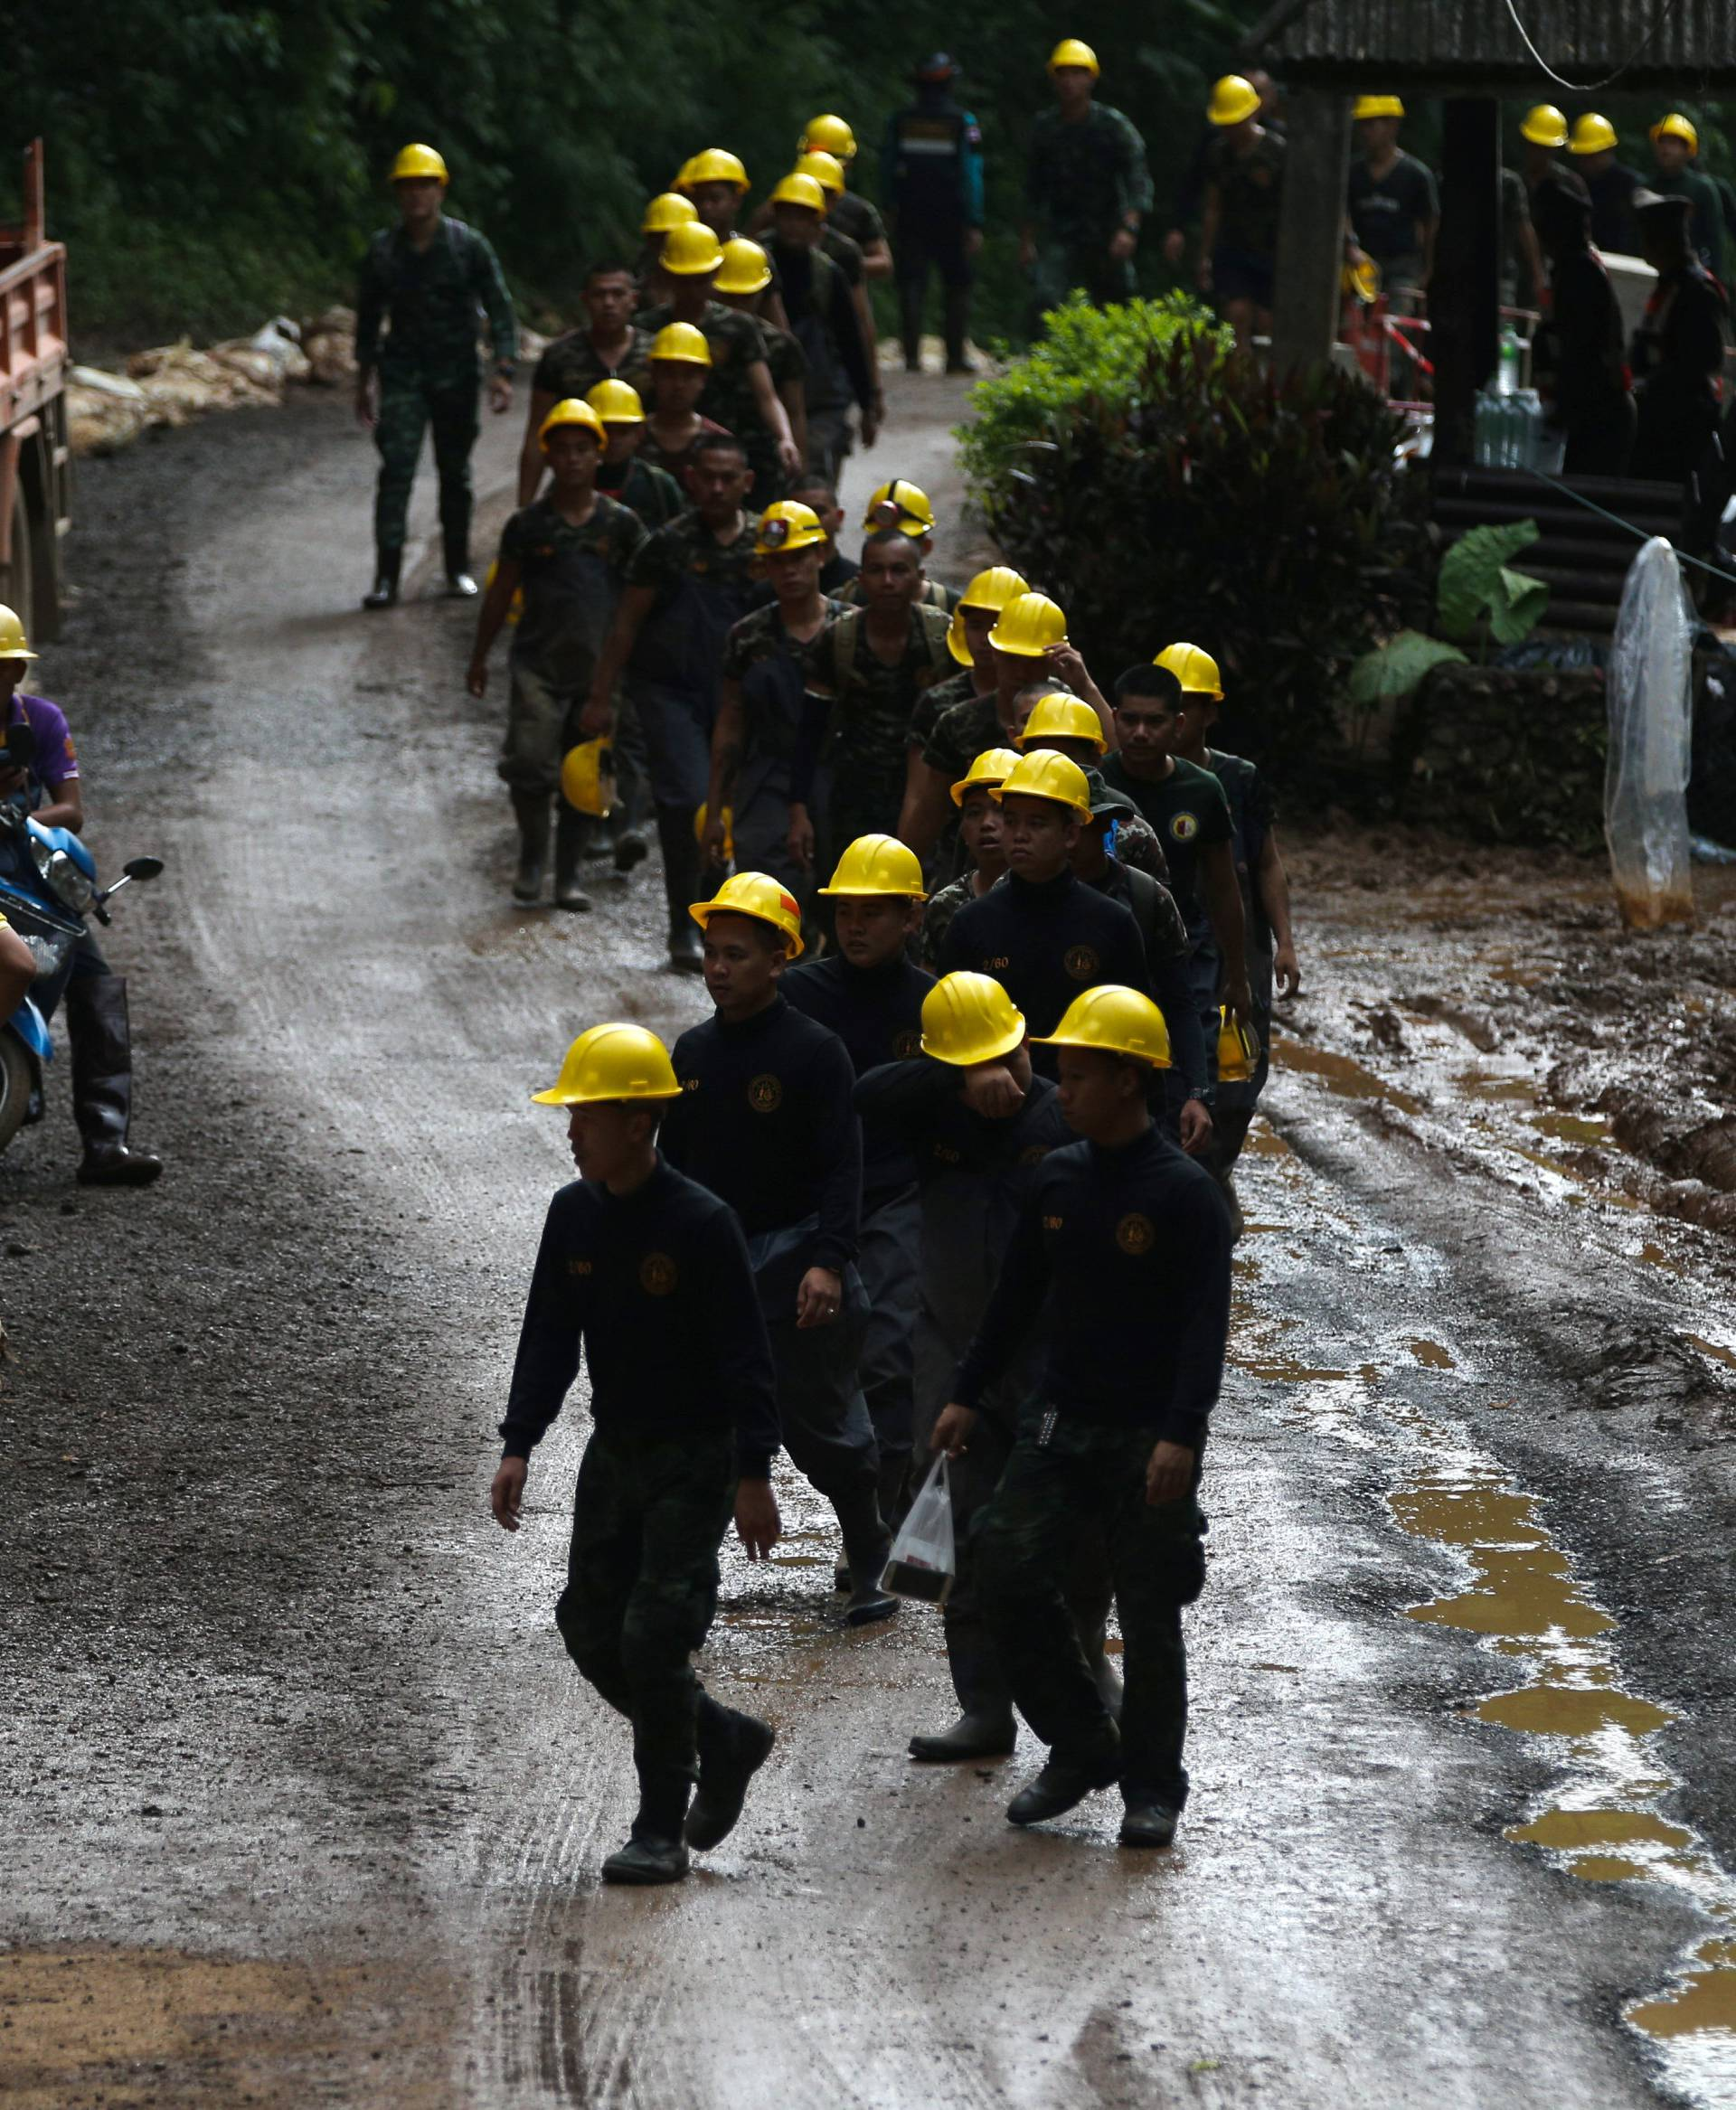 Military personnel walk in line as they prepare to enter the Tham Luang cave complex, where 12 boys and their soccer coach are trapped, in the northern province of Chiang Rai